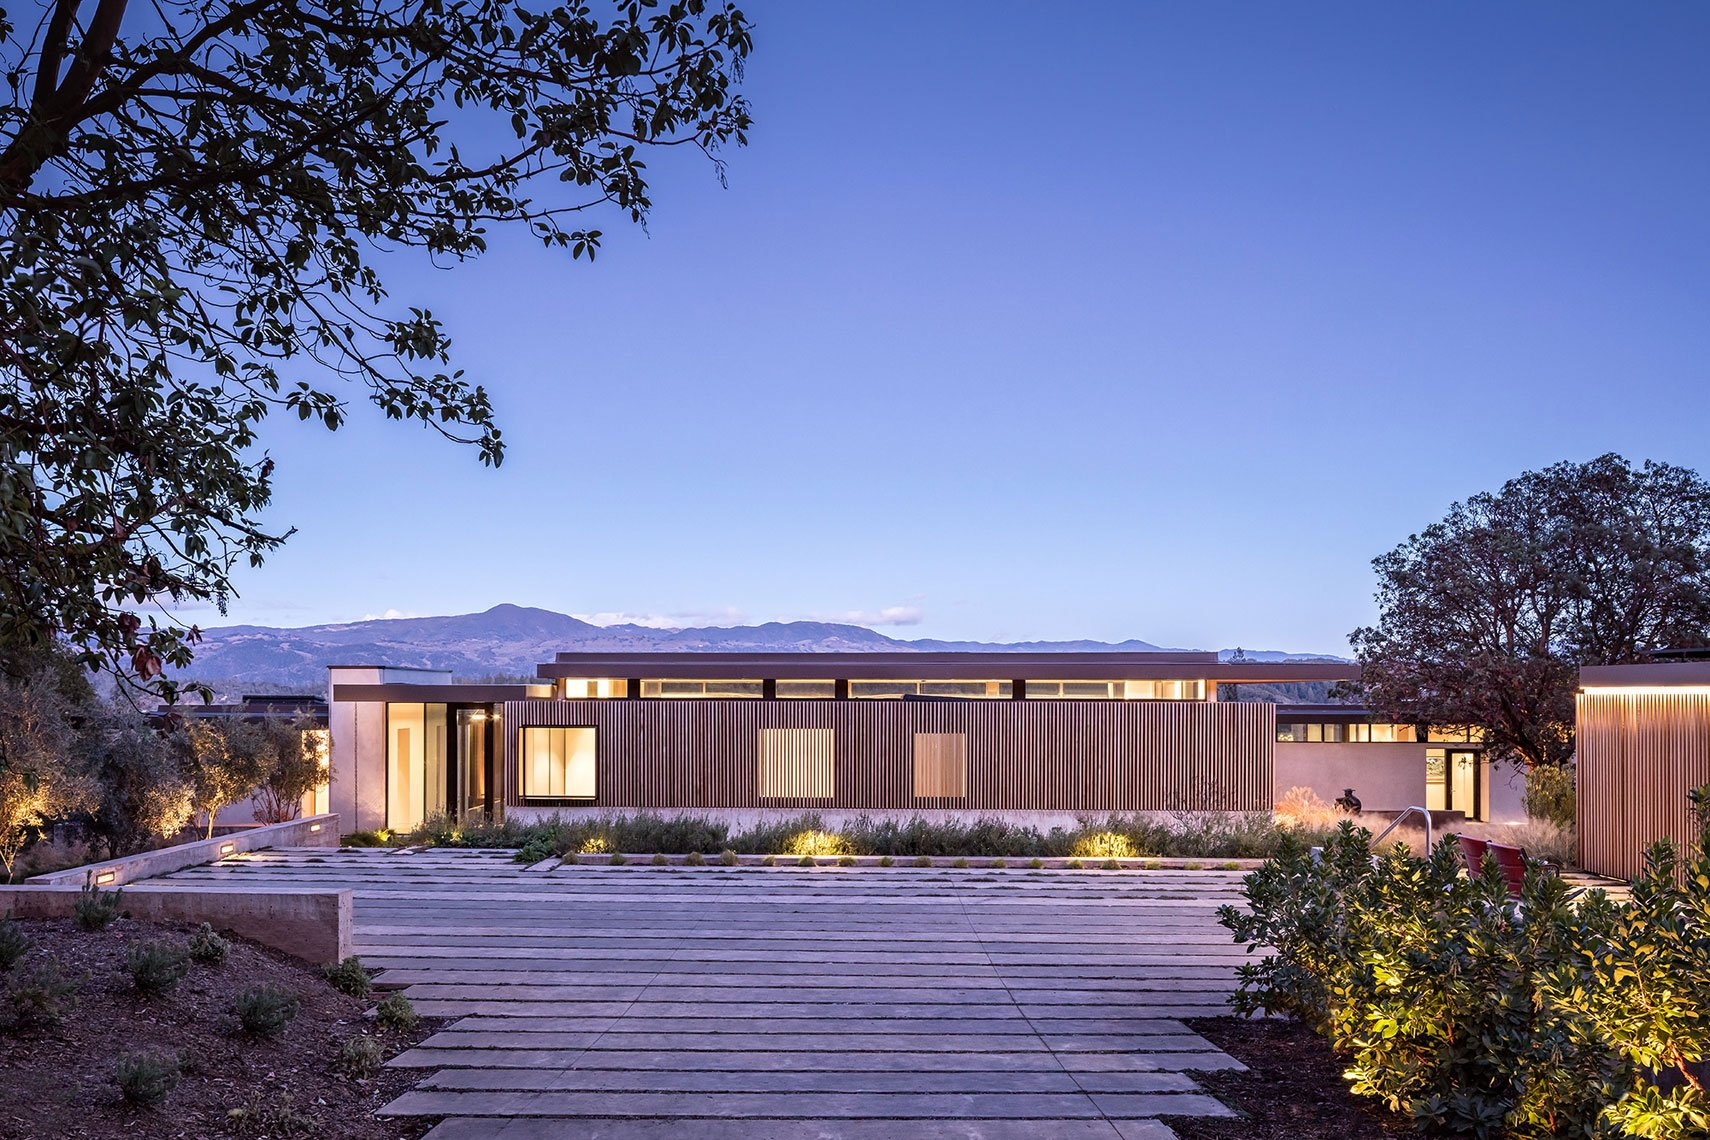 Dry Creek house - john maniscalco architecture - front view night